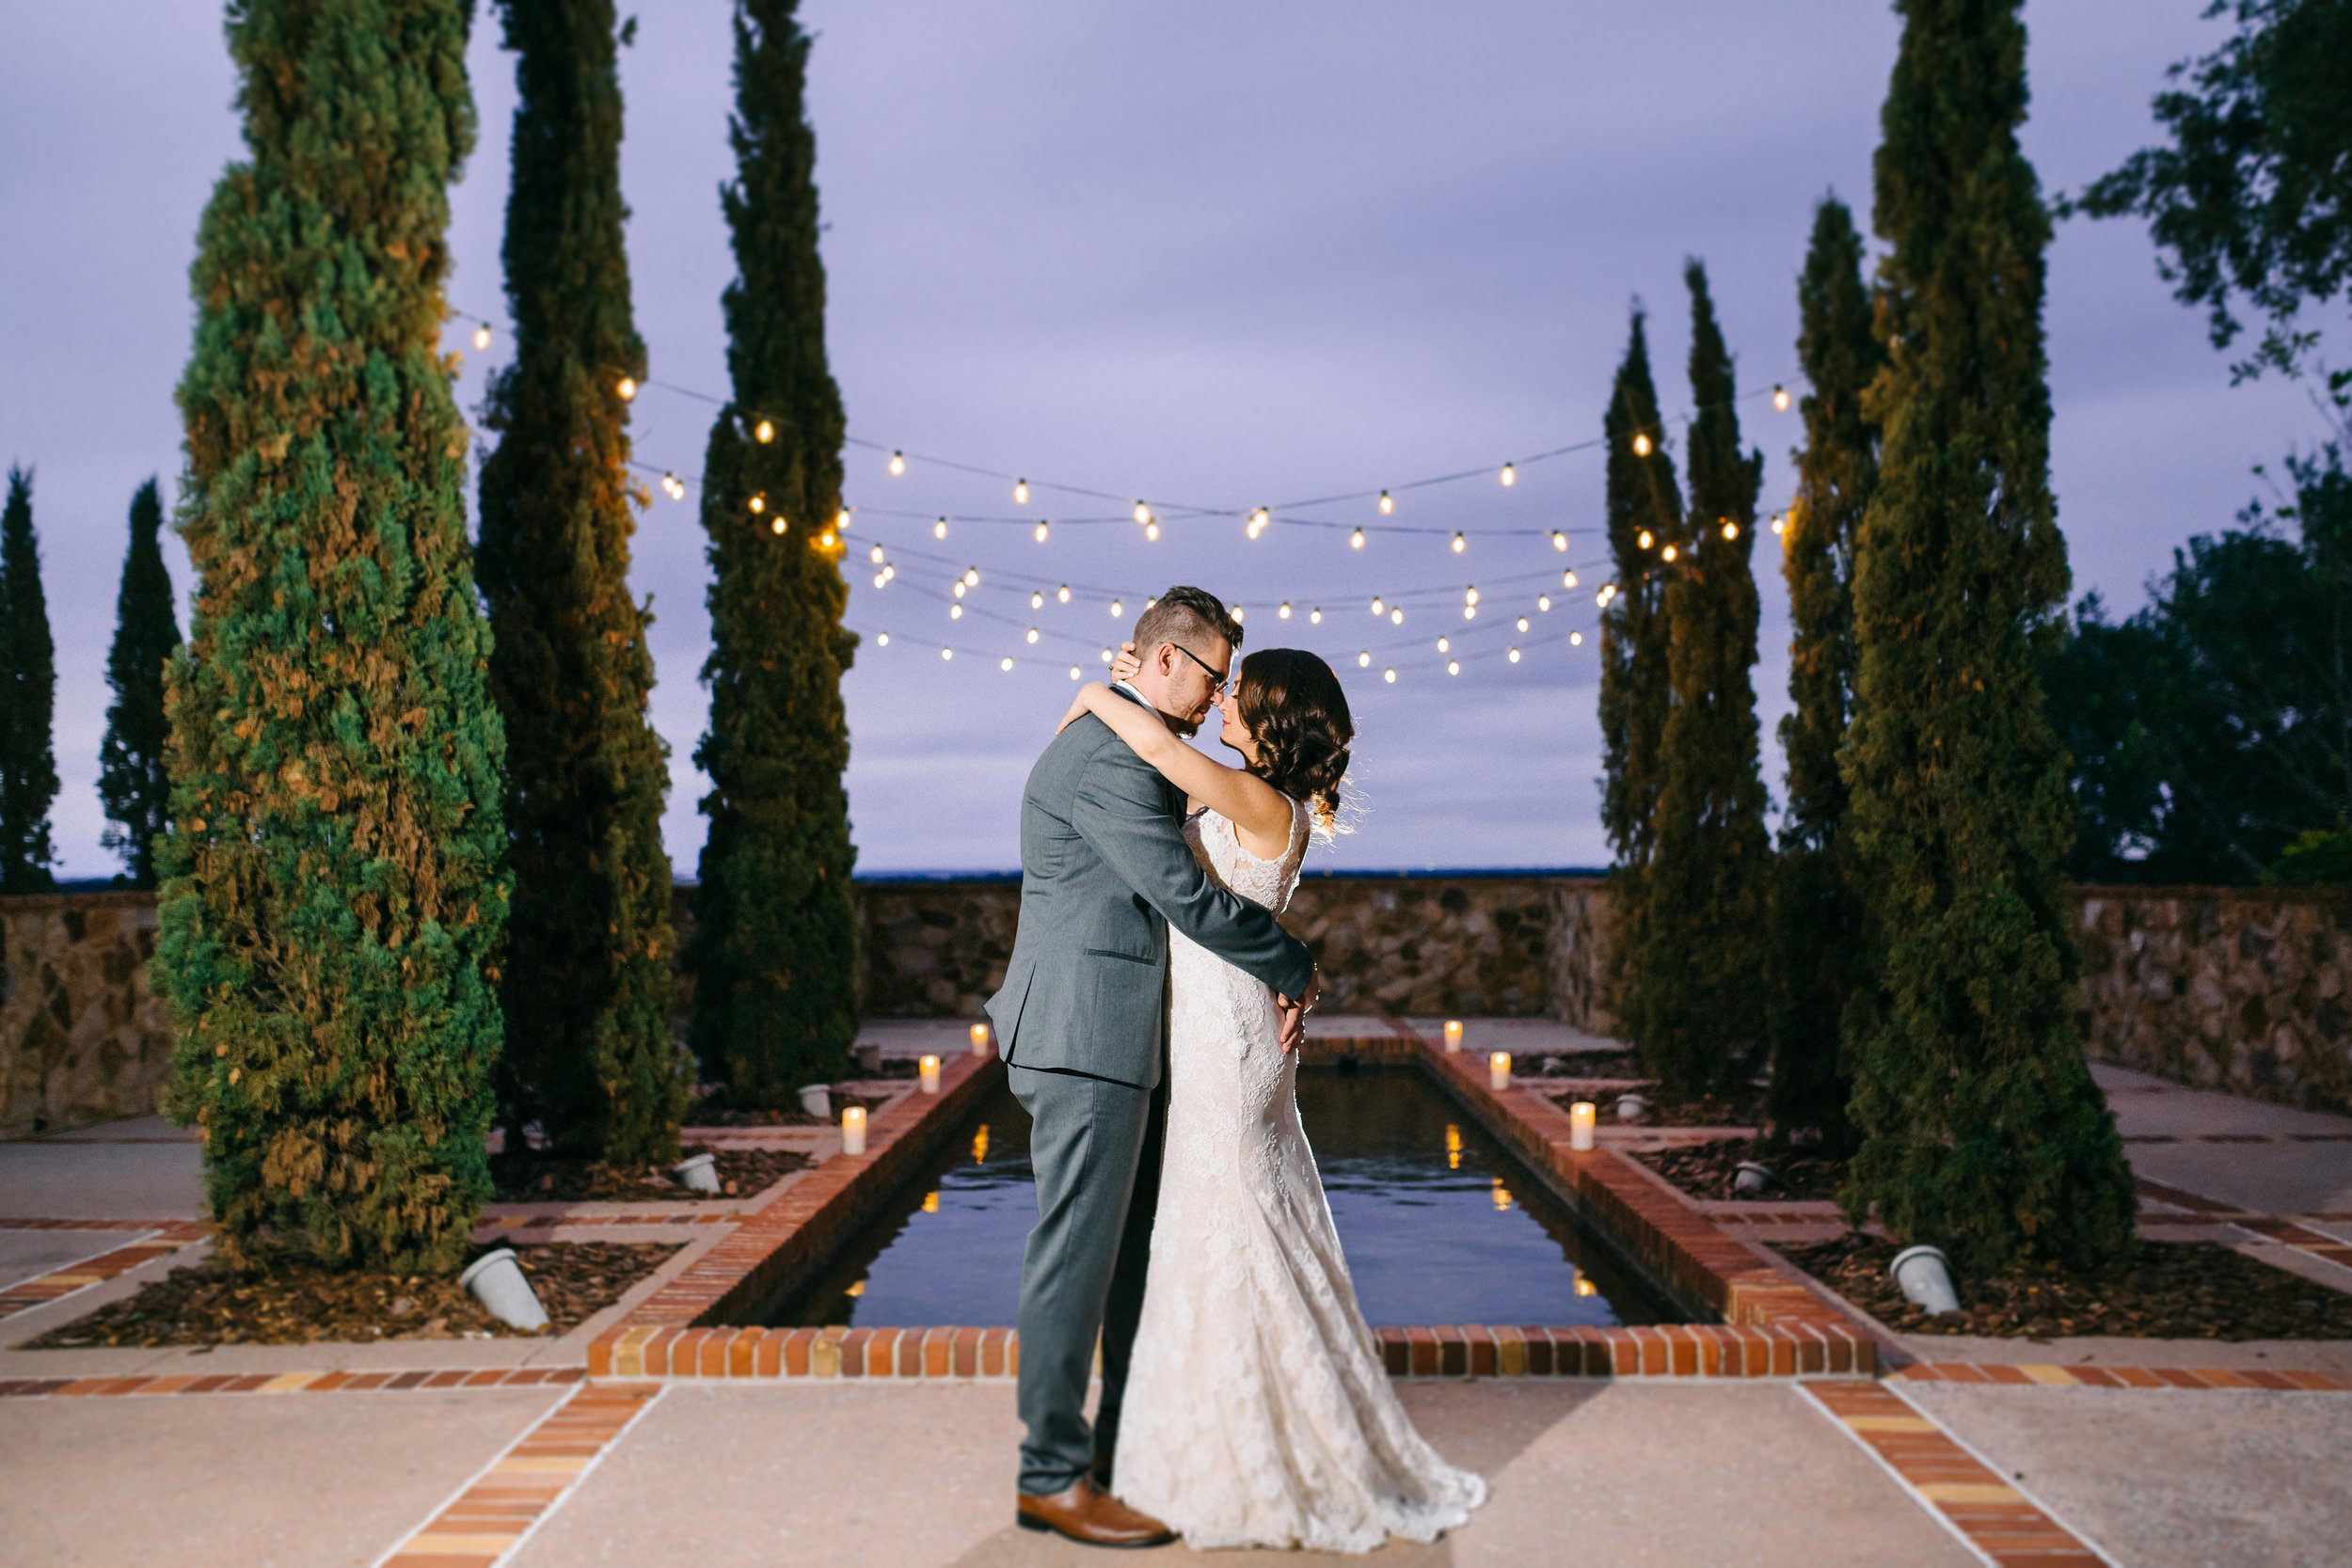 Tuscan inspired wedding at the Reflection Pond  Orlando Wedding Planner Blue Ribbon Weddings  Orlando Wedding Photographer Emma Shourds Photography  Wedding Ceremony at Bell Tower at Bella Collina  Wedding Reception in Atrium at Bella Collina